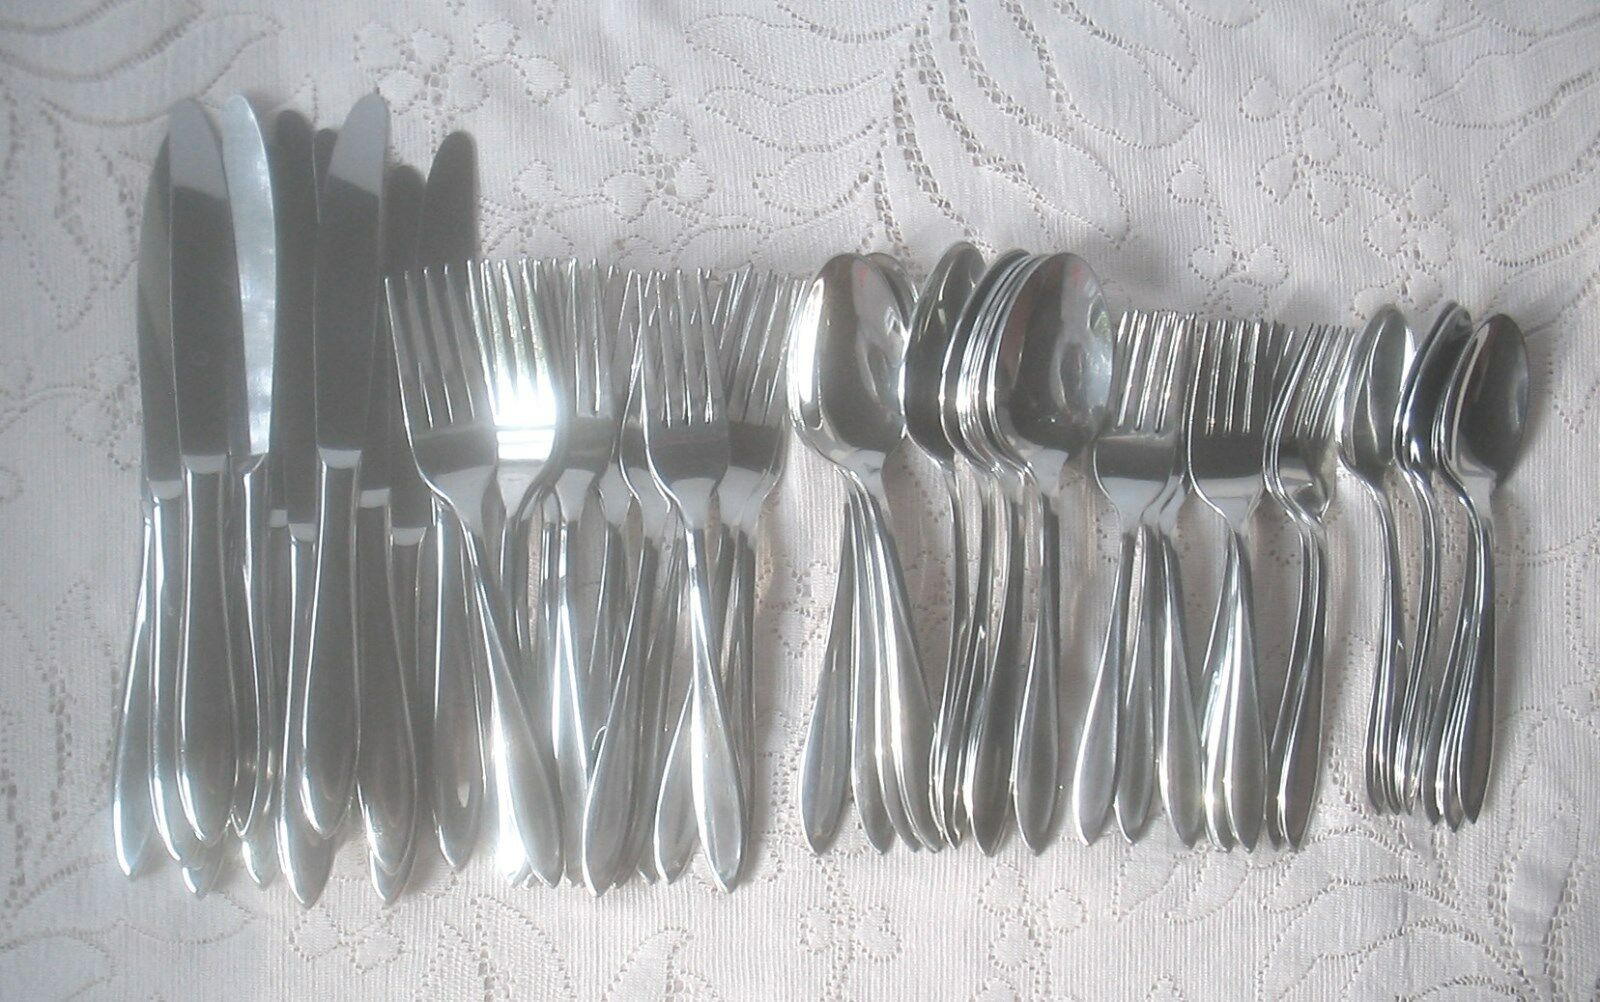 StegorCraft SCULPTURA Stainless Steel Flatware 53 Pieces MADE IN THE USA